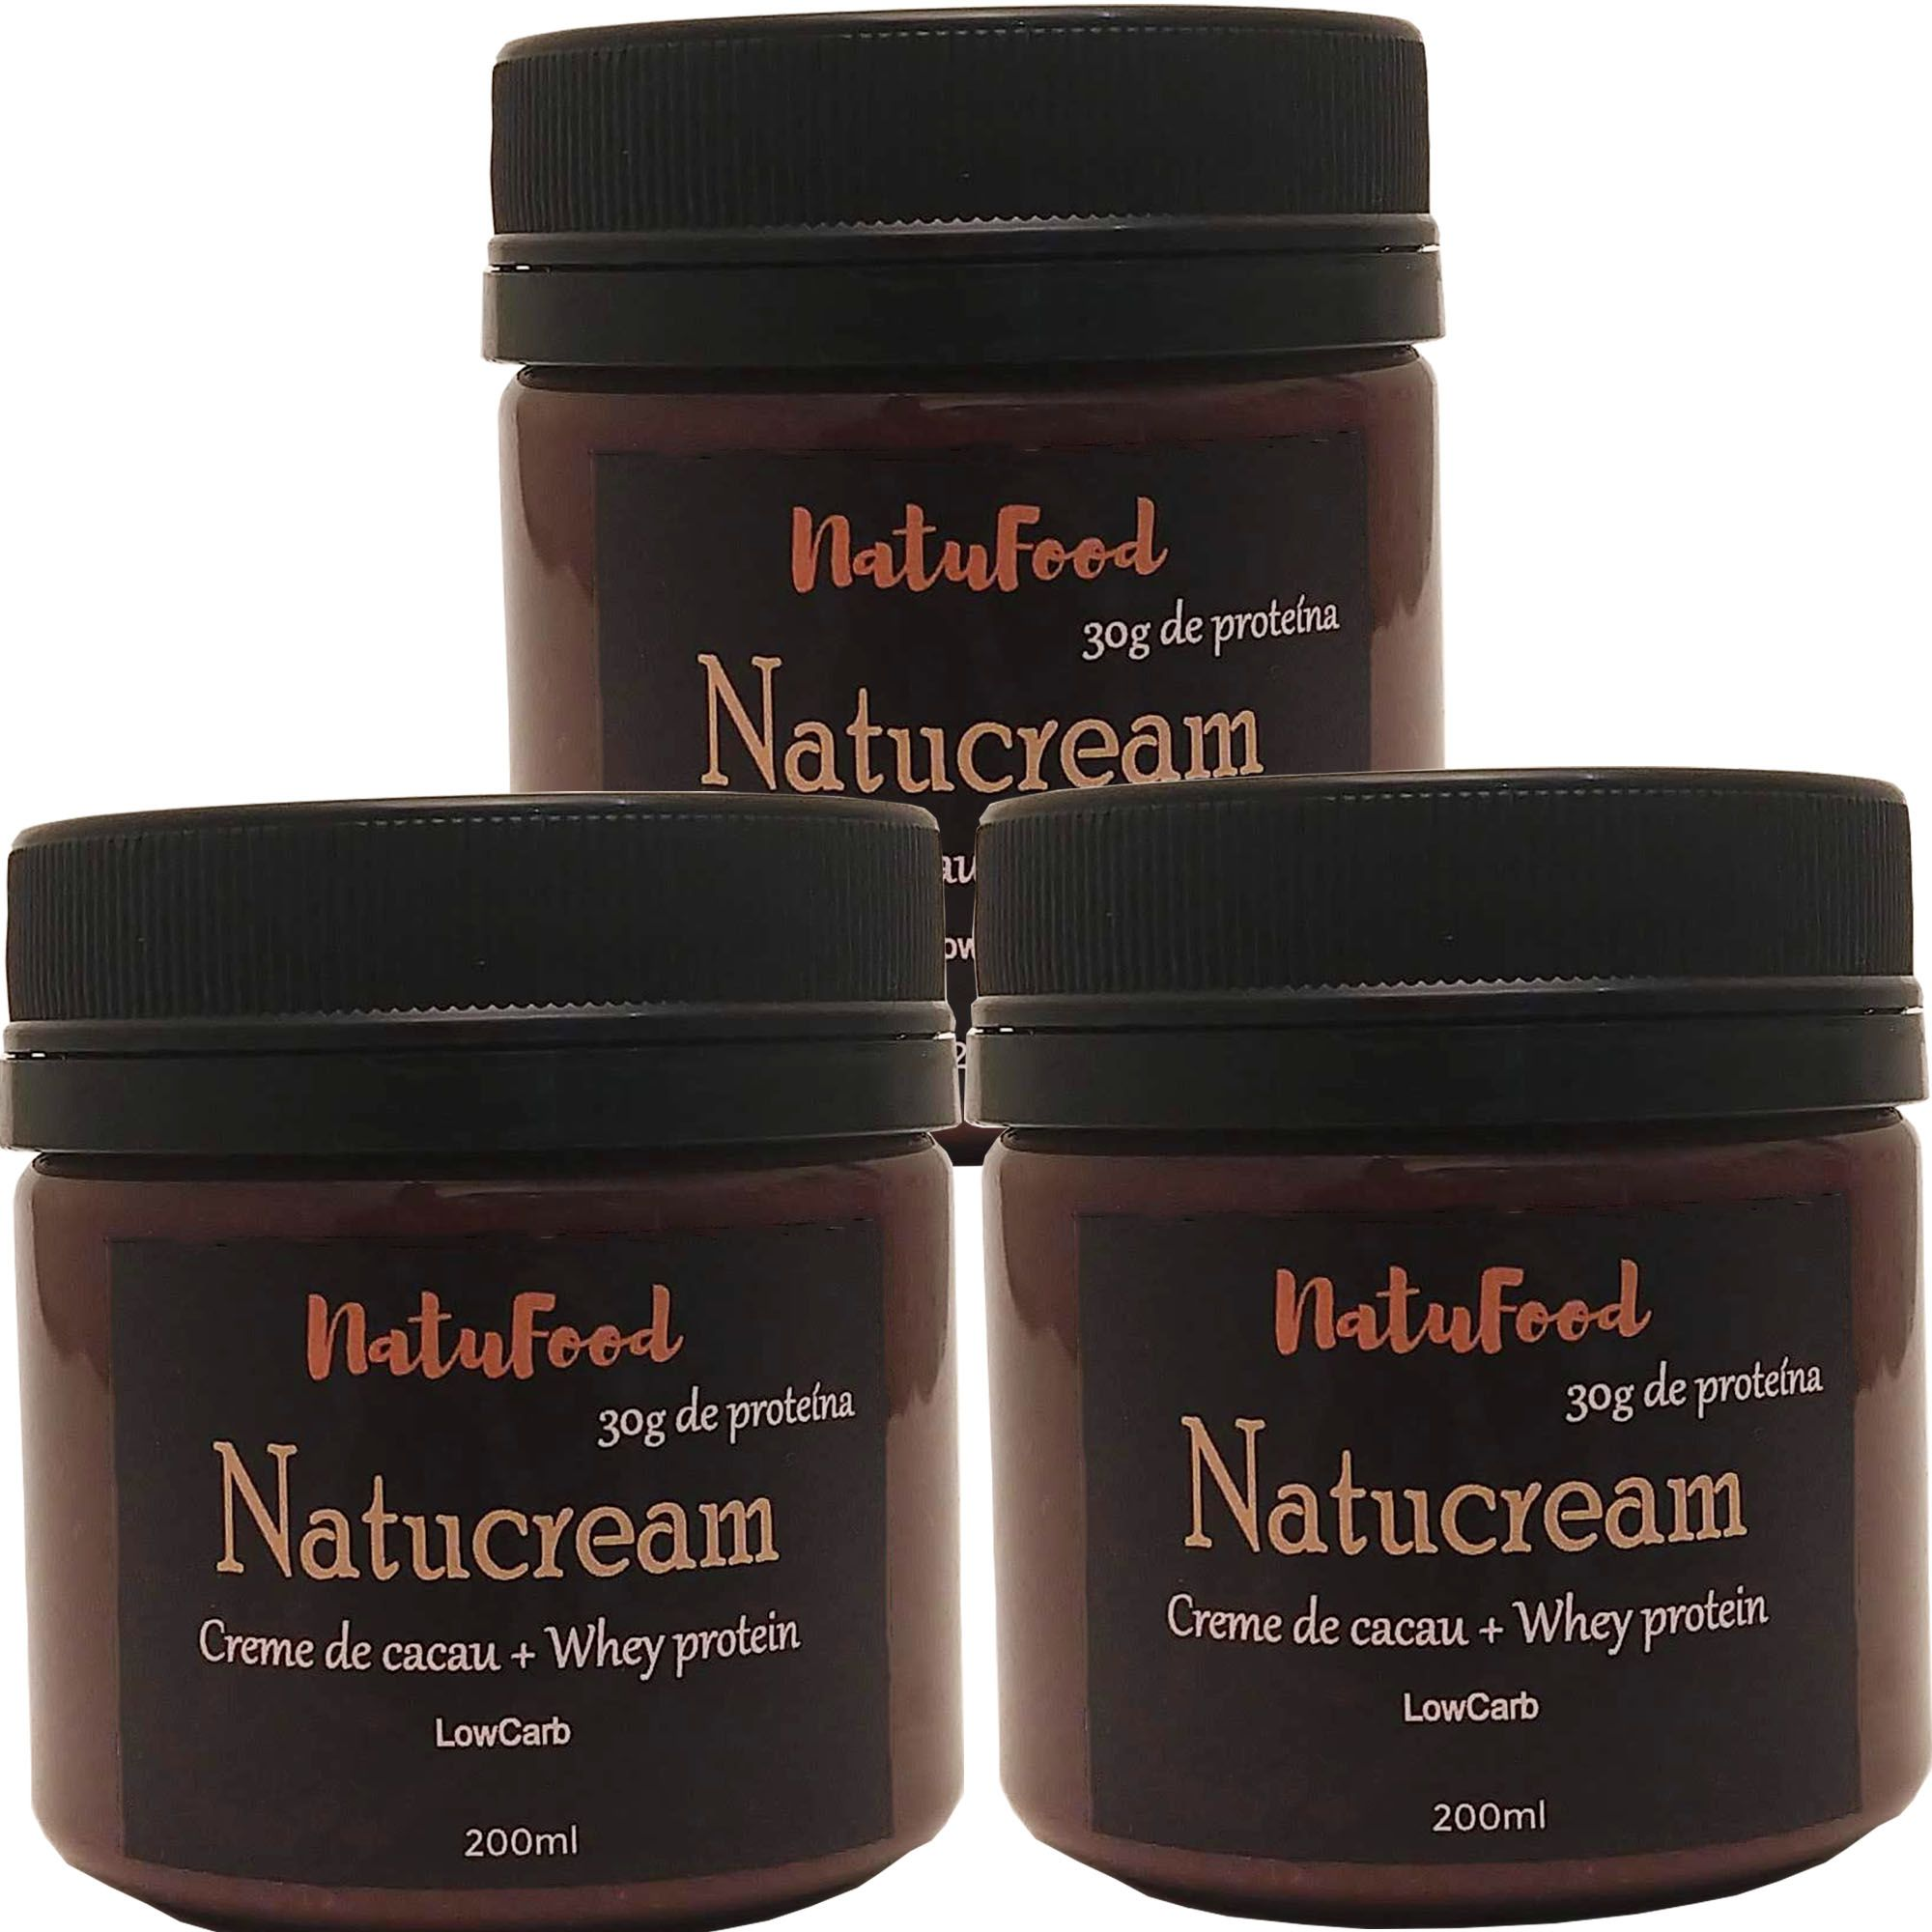 KIT NATUCREAM CACAU + WHEY ISOLADO 3 UNID  - Natufood